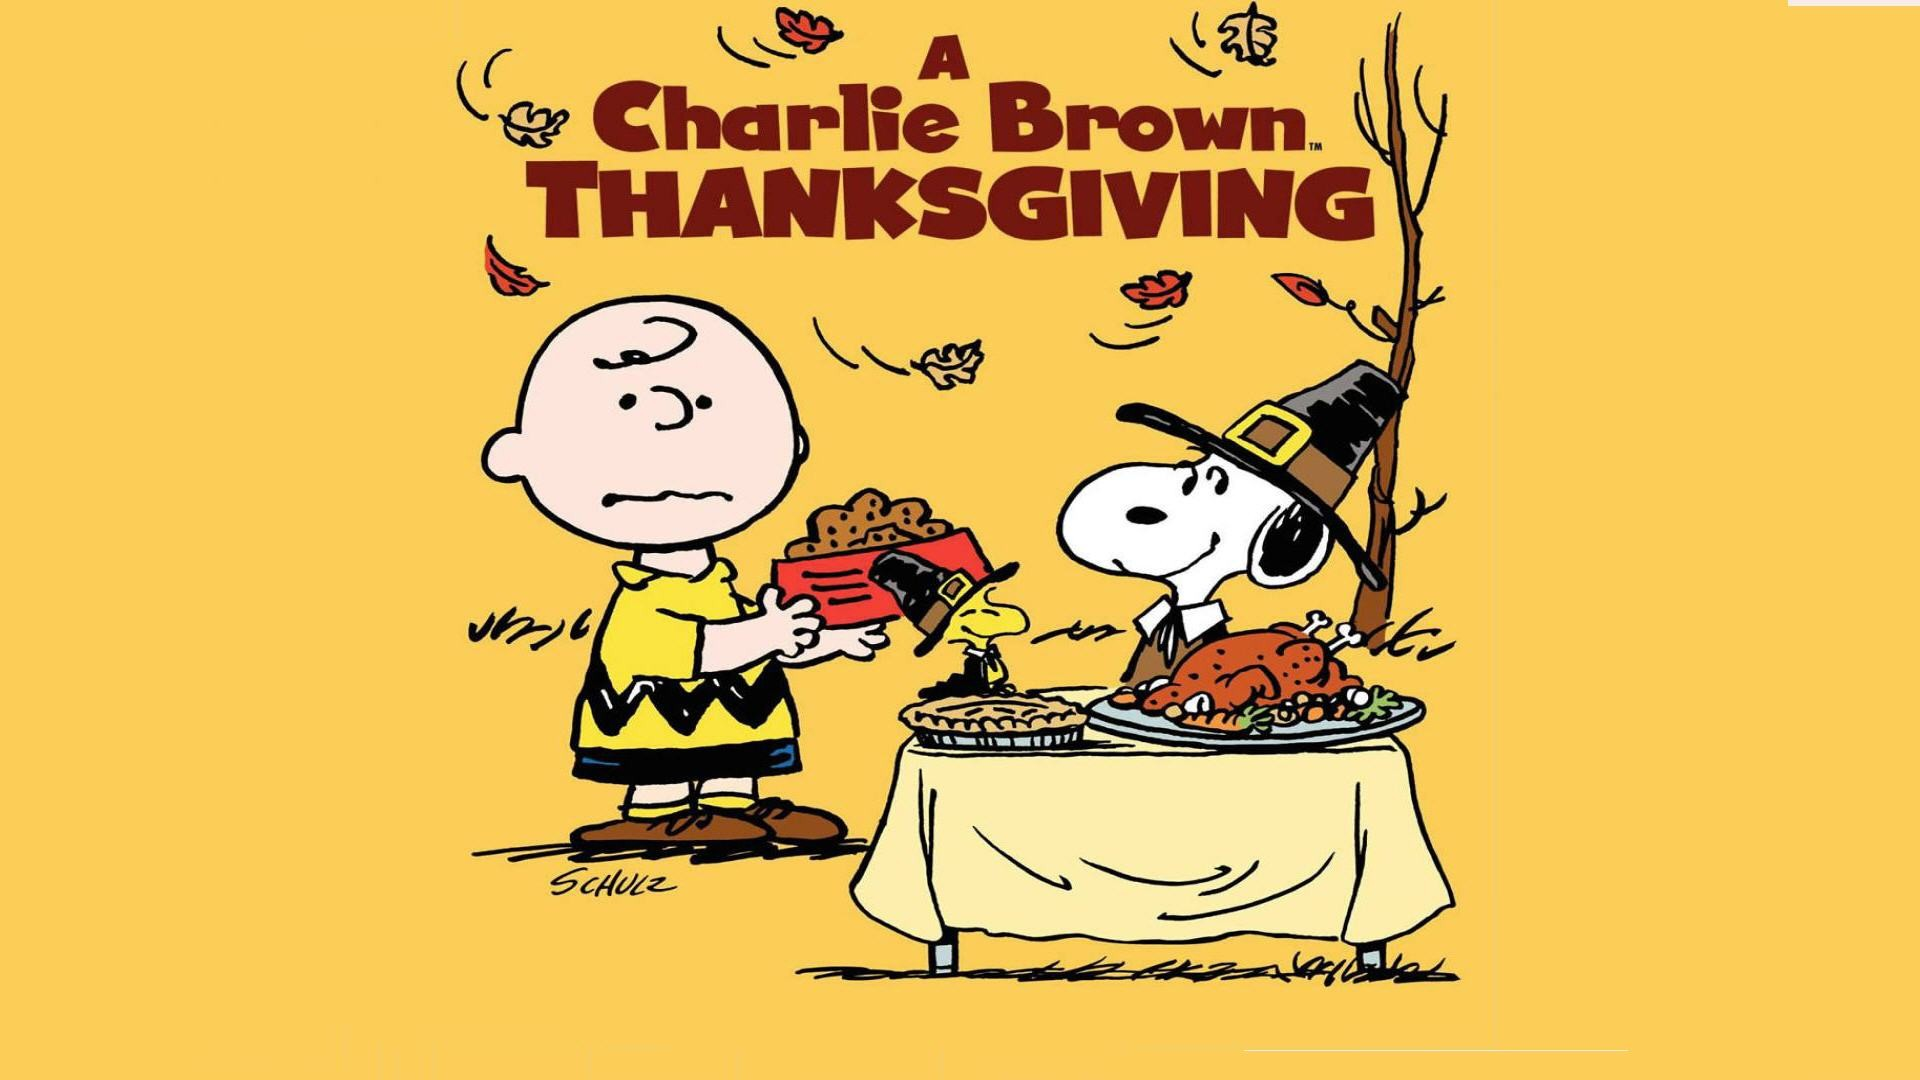 1920x1080 Charlie Brown Thanksgiving Wallpaper